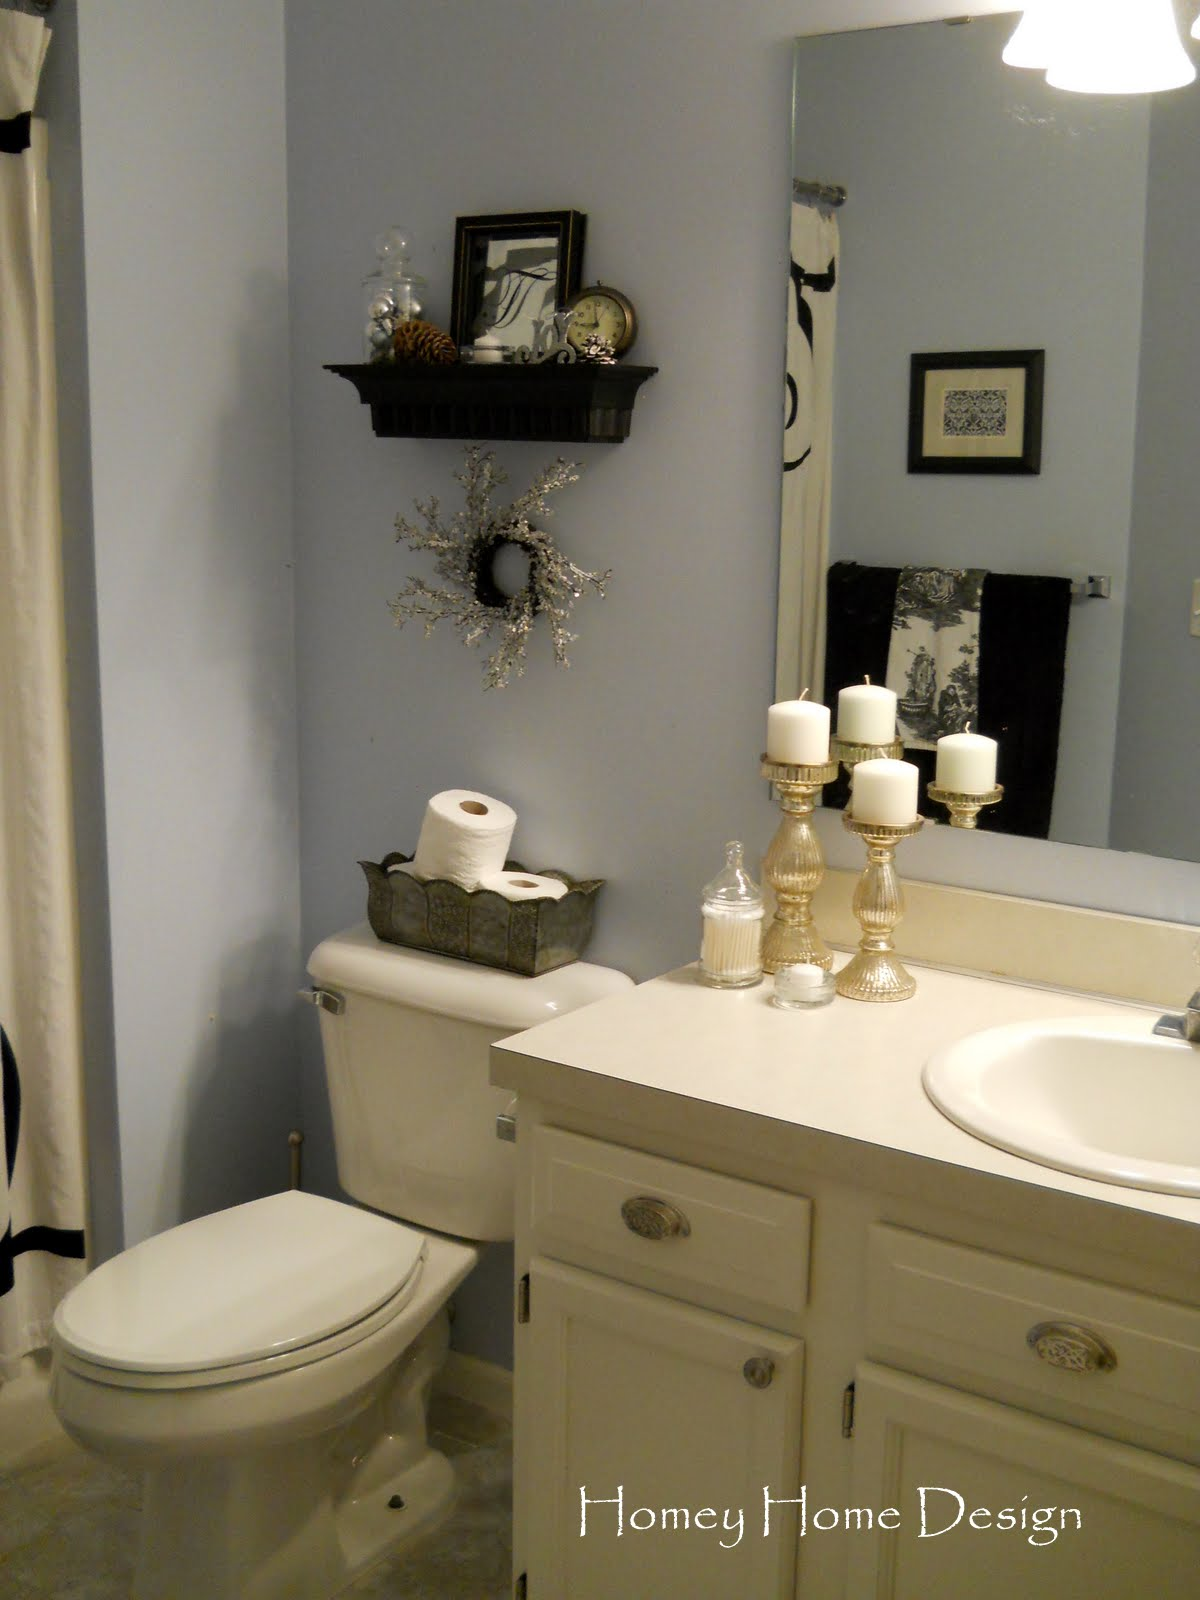 Homey home design christmas in the bathroom for Bathroom decor